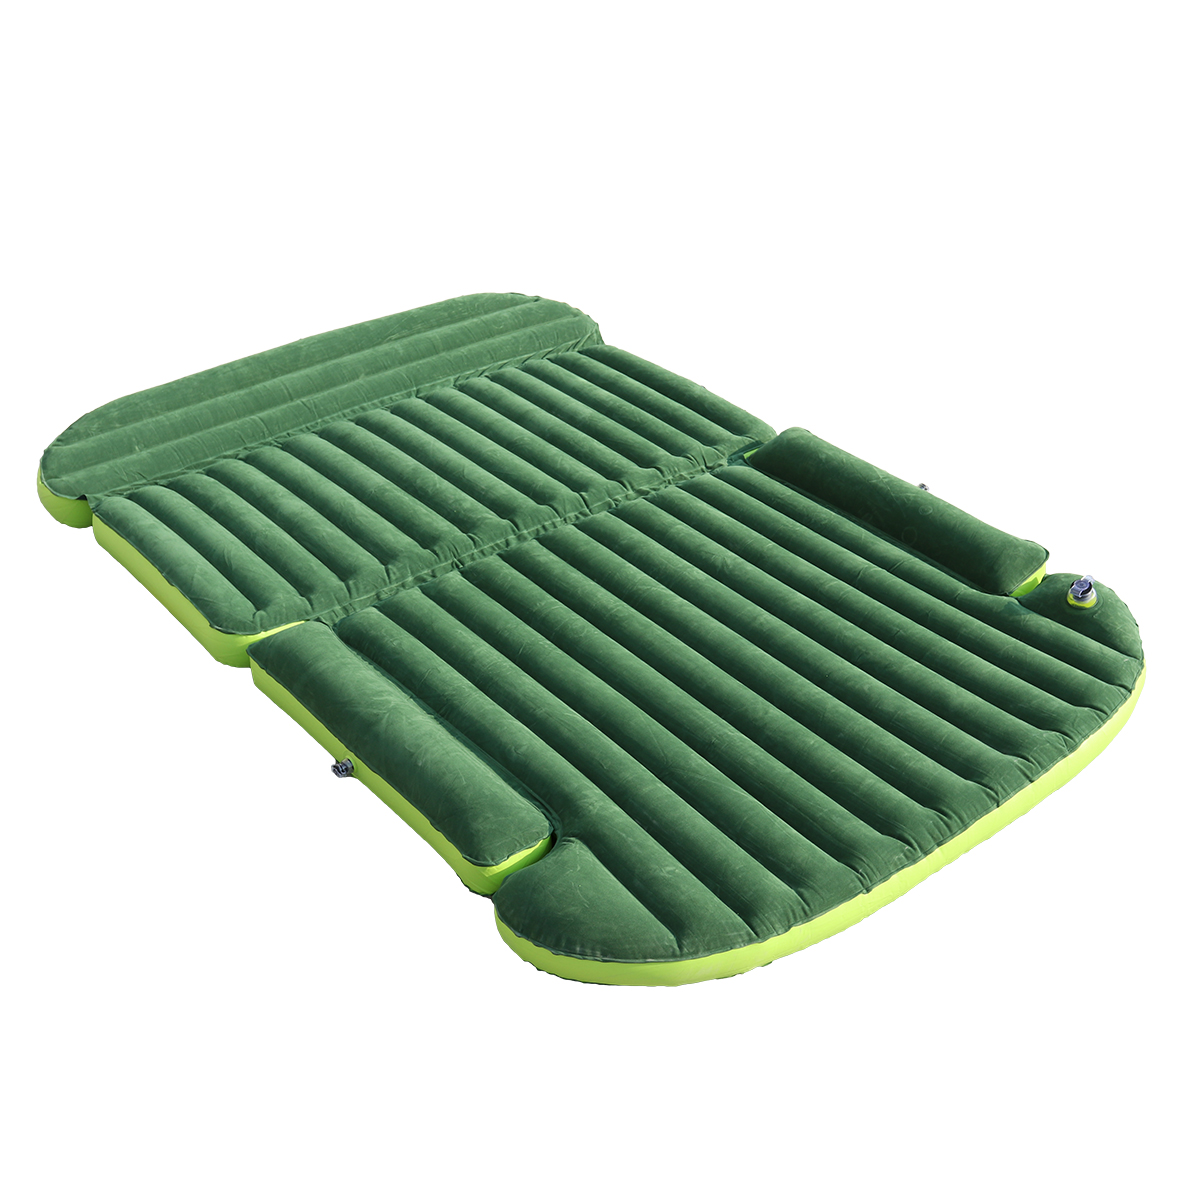 Car Travel Inflatable Mattress SUV Bed Camping Back Seat Extended Mattress PVC Flocking Seat Back bed Inflatable Bed for travel durable thicken pvc car travel inflatable bed automotive air mattress camping mat with air pump